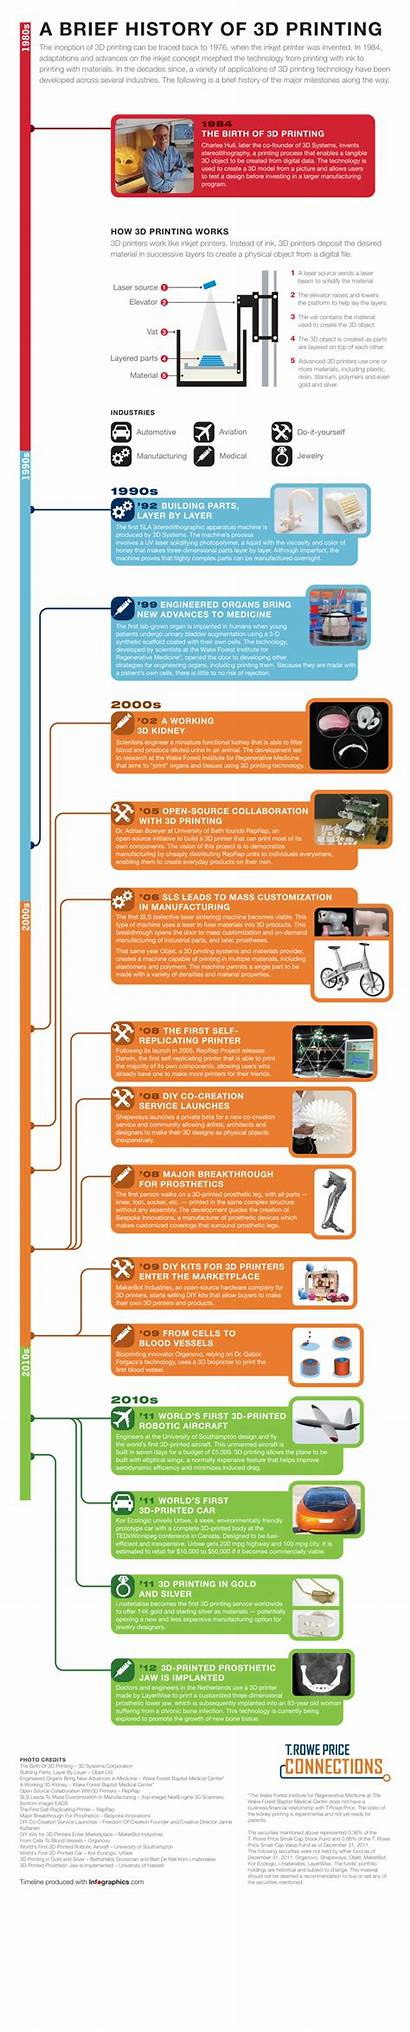 Printing 3d History Infographic Engineering Brief Technology